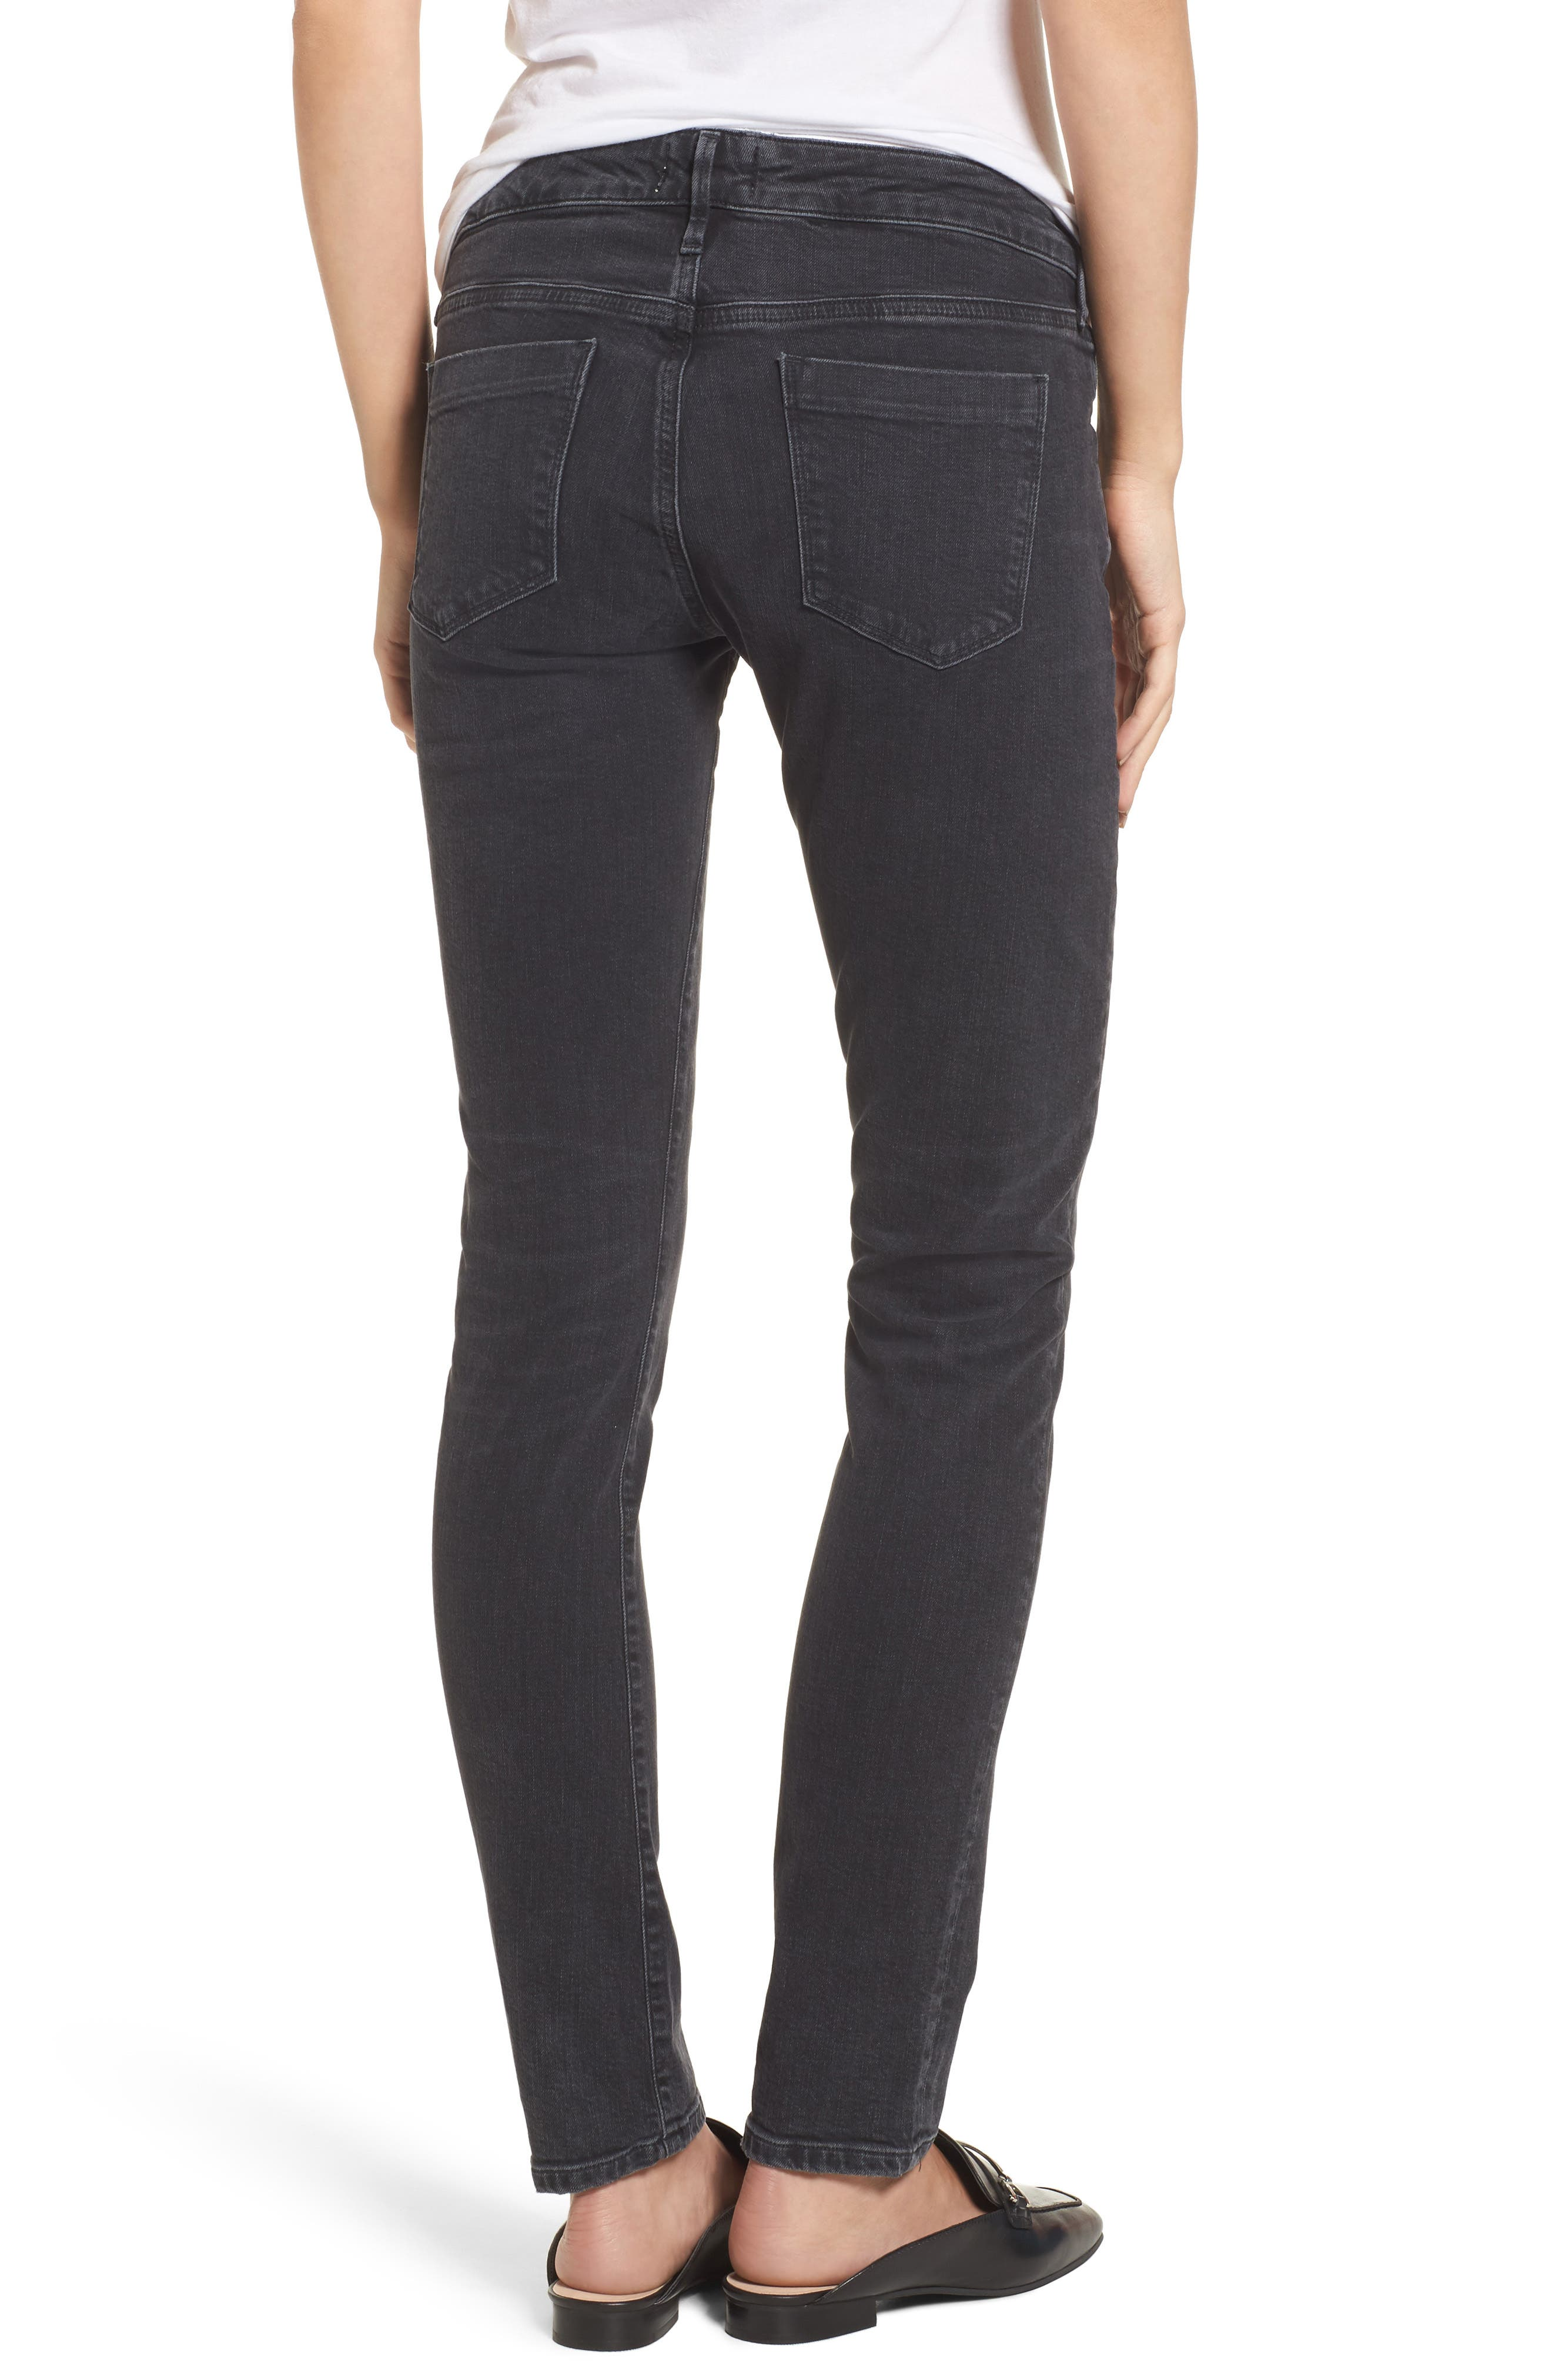 Chloe Low Rise Slim Jeans,                             Alternate thumbnail 2, color,                             Chelsea